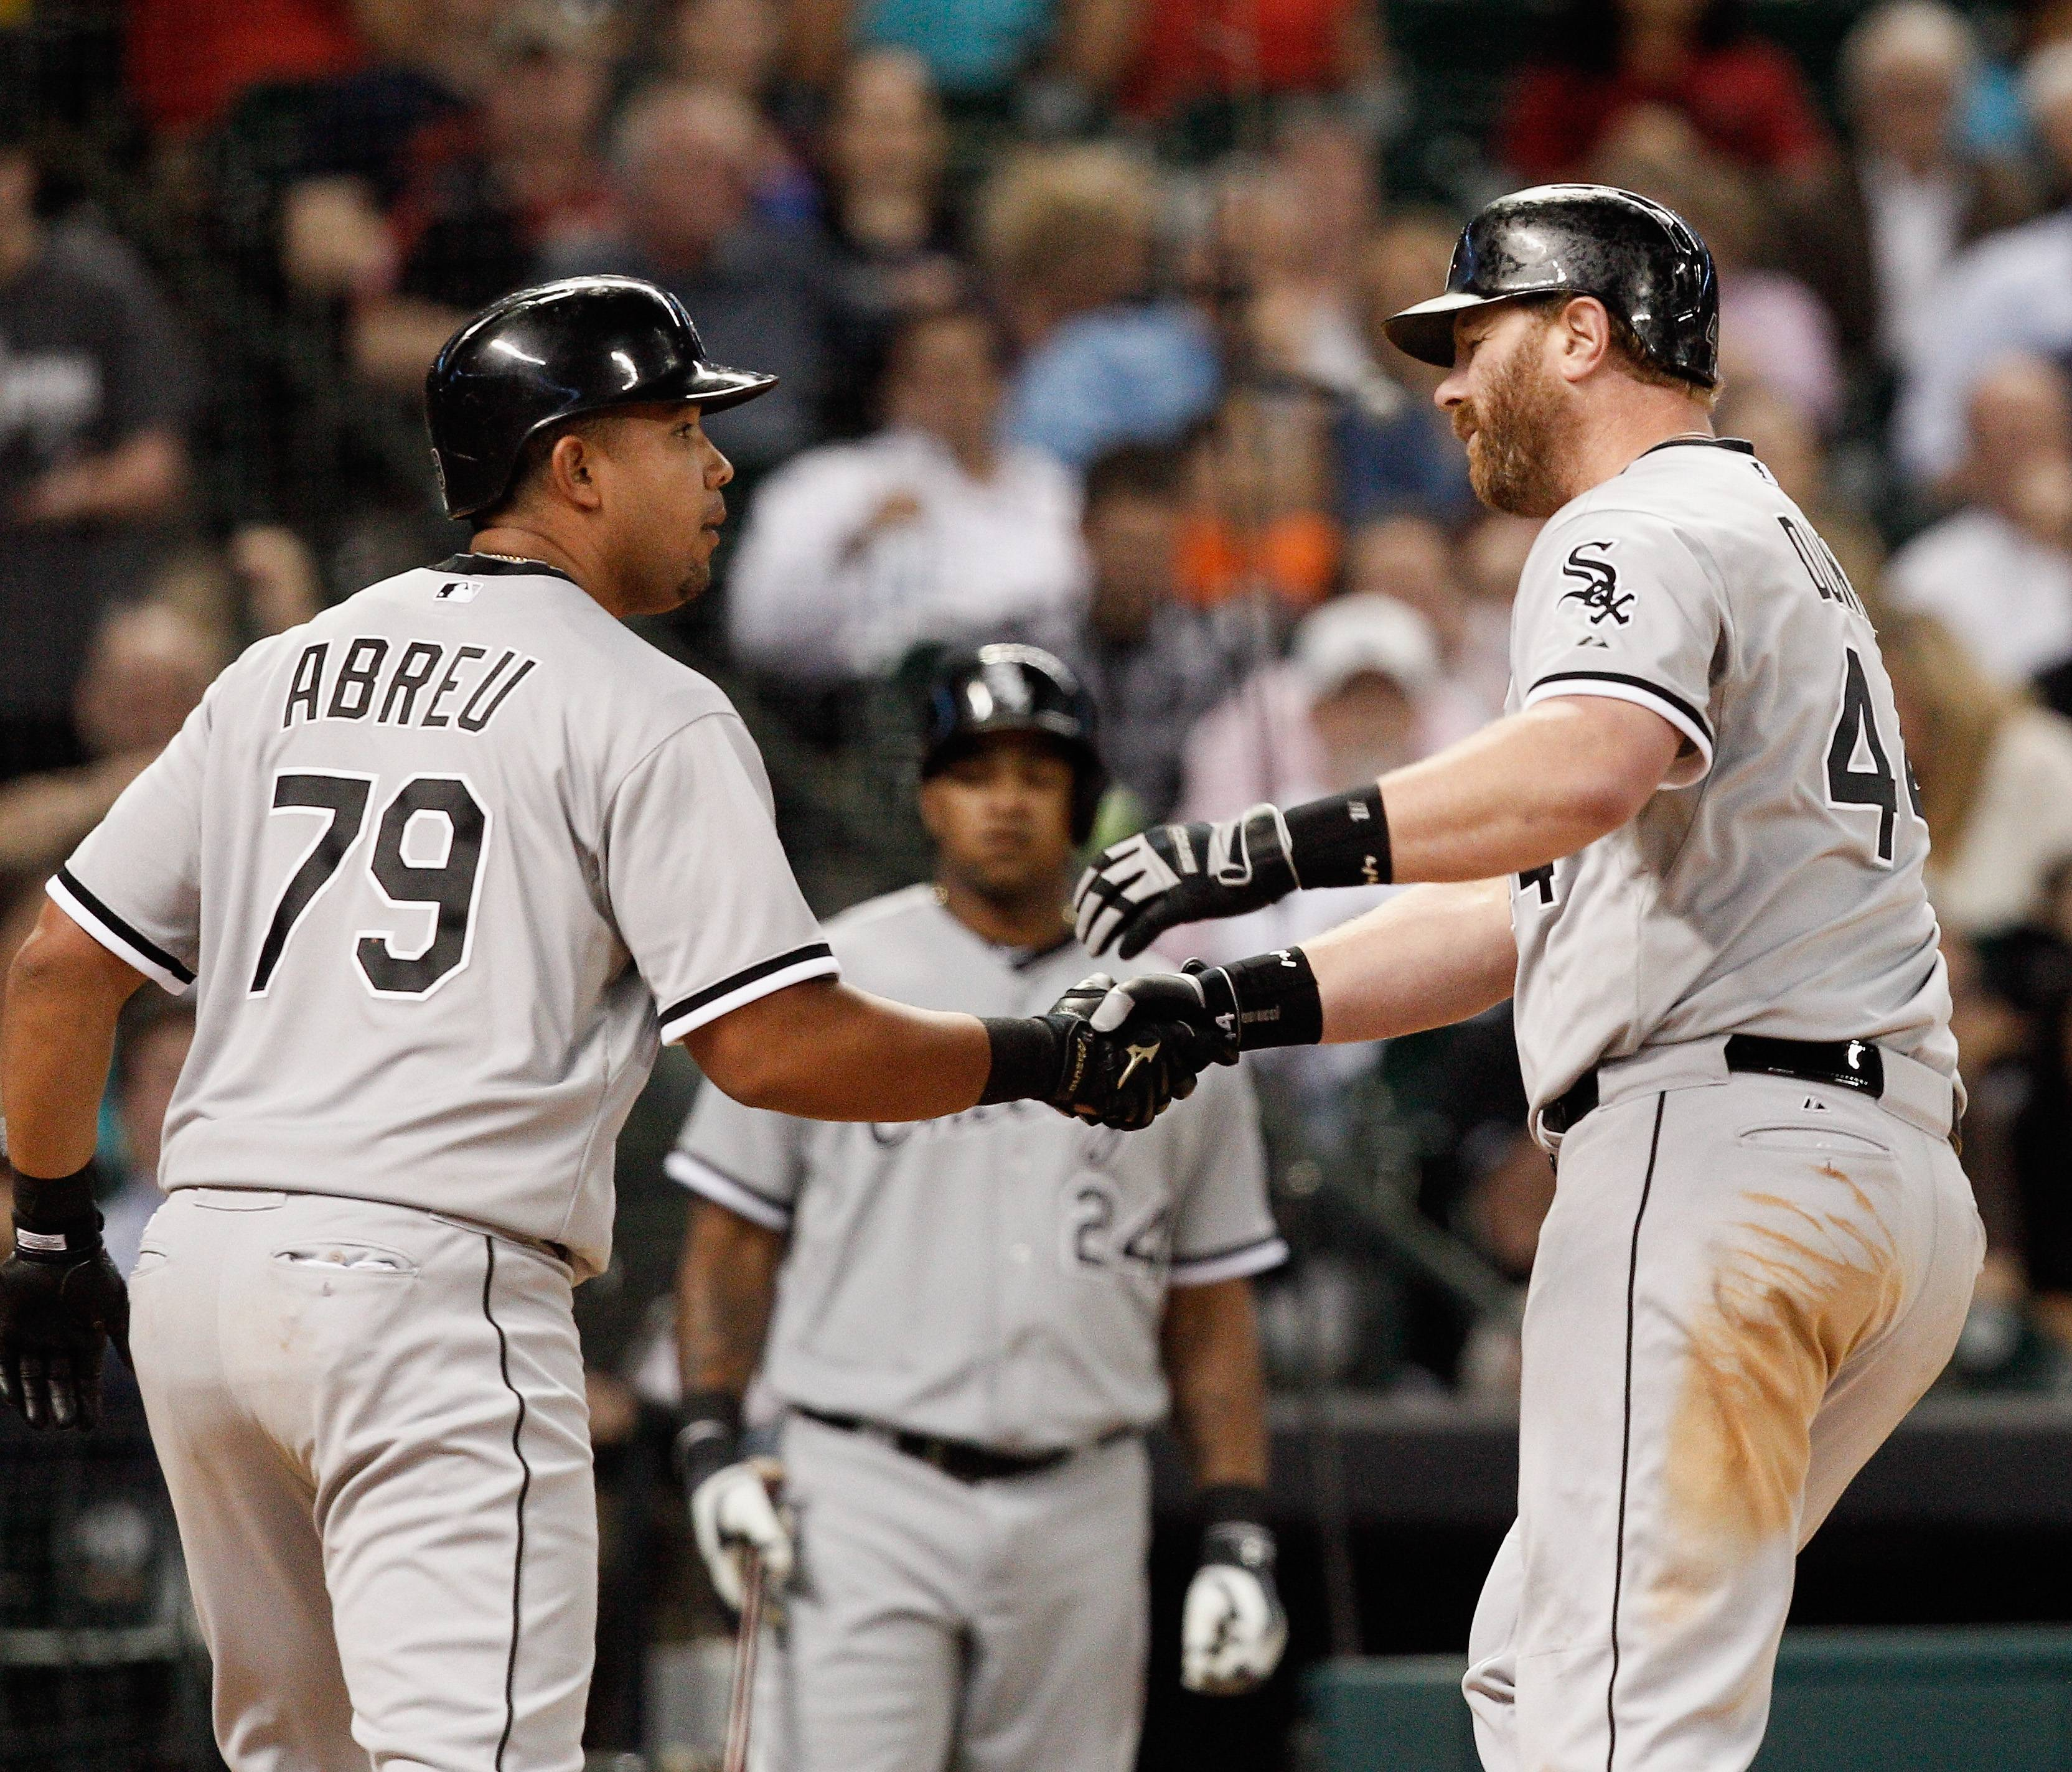 Chicago White Sox's  Adam Dunn, right, is congratulated by teammate Jose Abreu, right, after hitting a three-run home run in the sixth inning against the Houston Astros during a baseball game on Friday, May 16, 2014, in Houston.